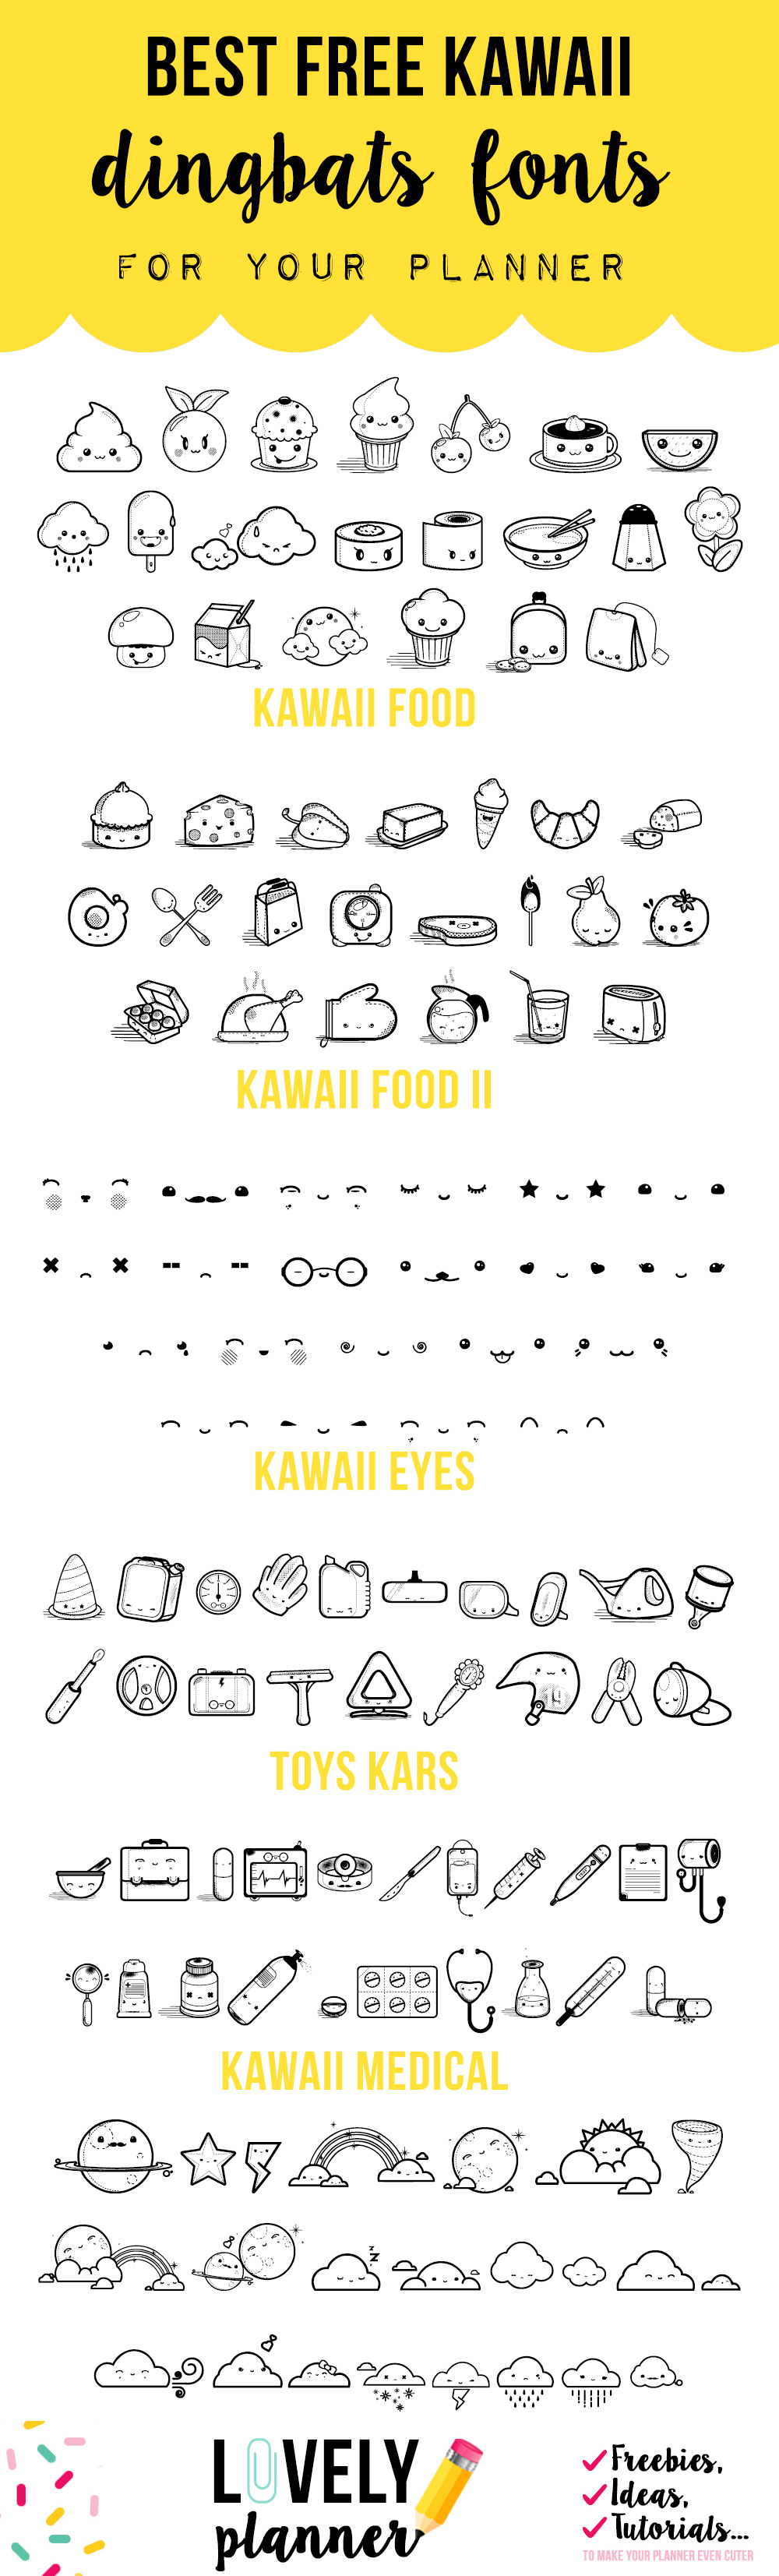 Free dingbats fonts to create kawaii stickers for your